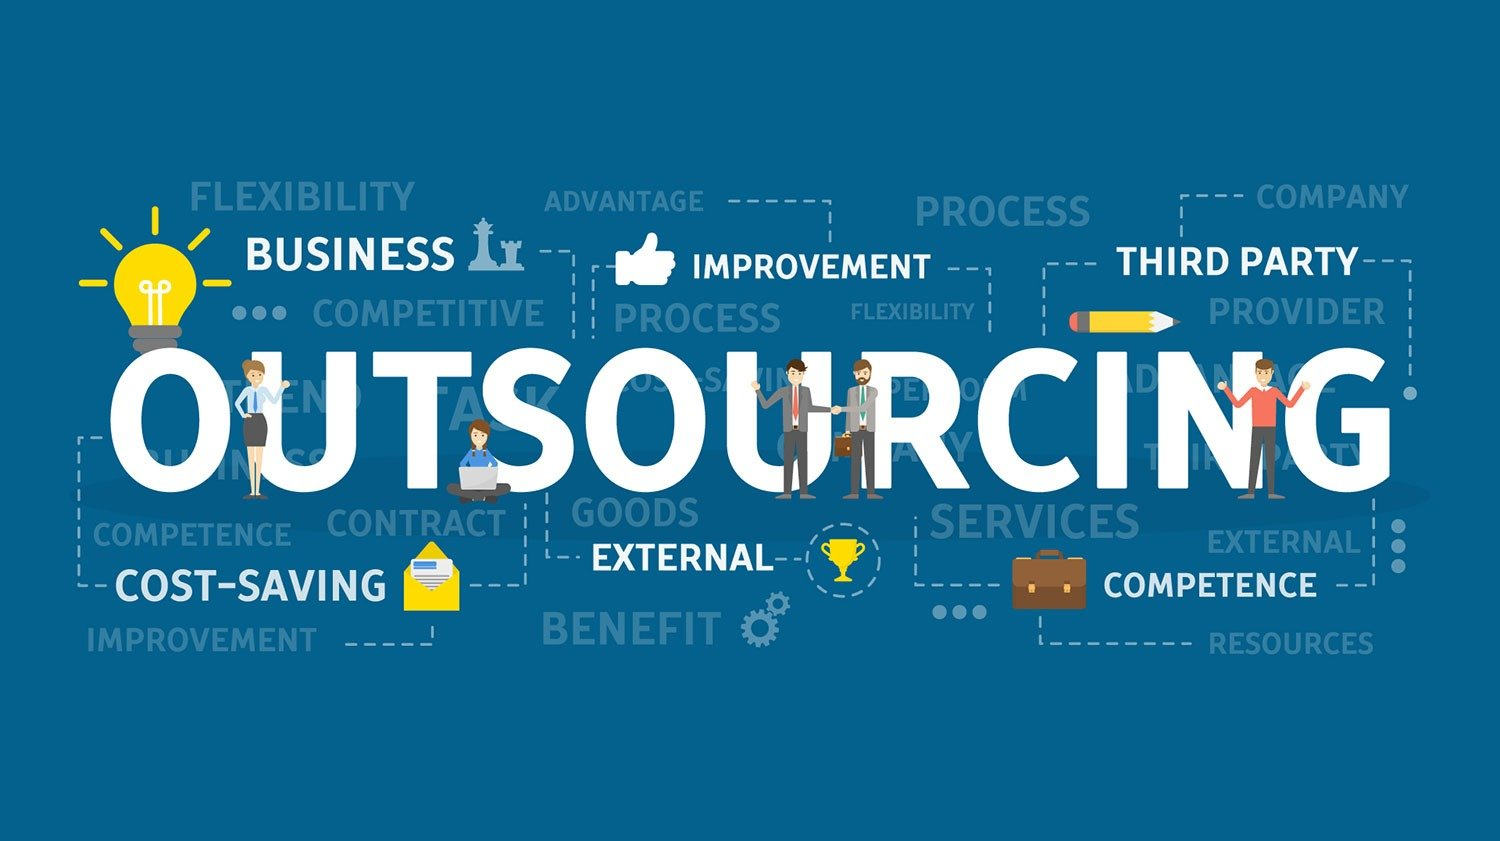 Is Outsourcing Going to be the New Normal?